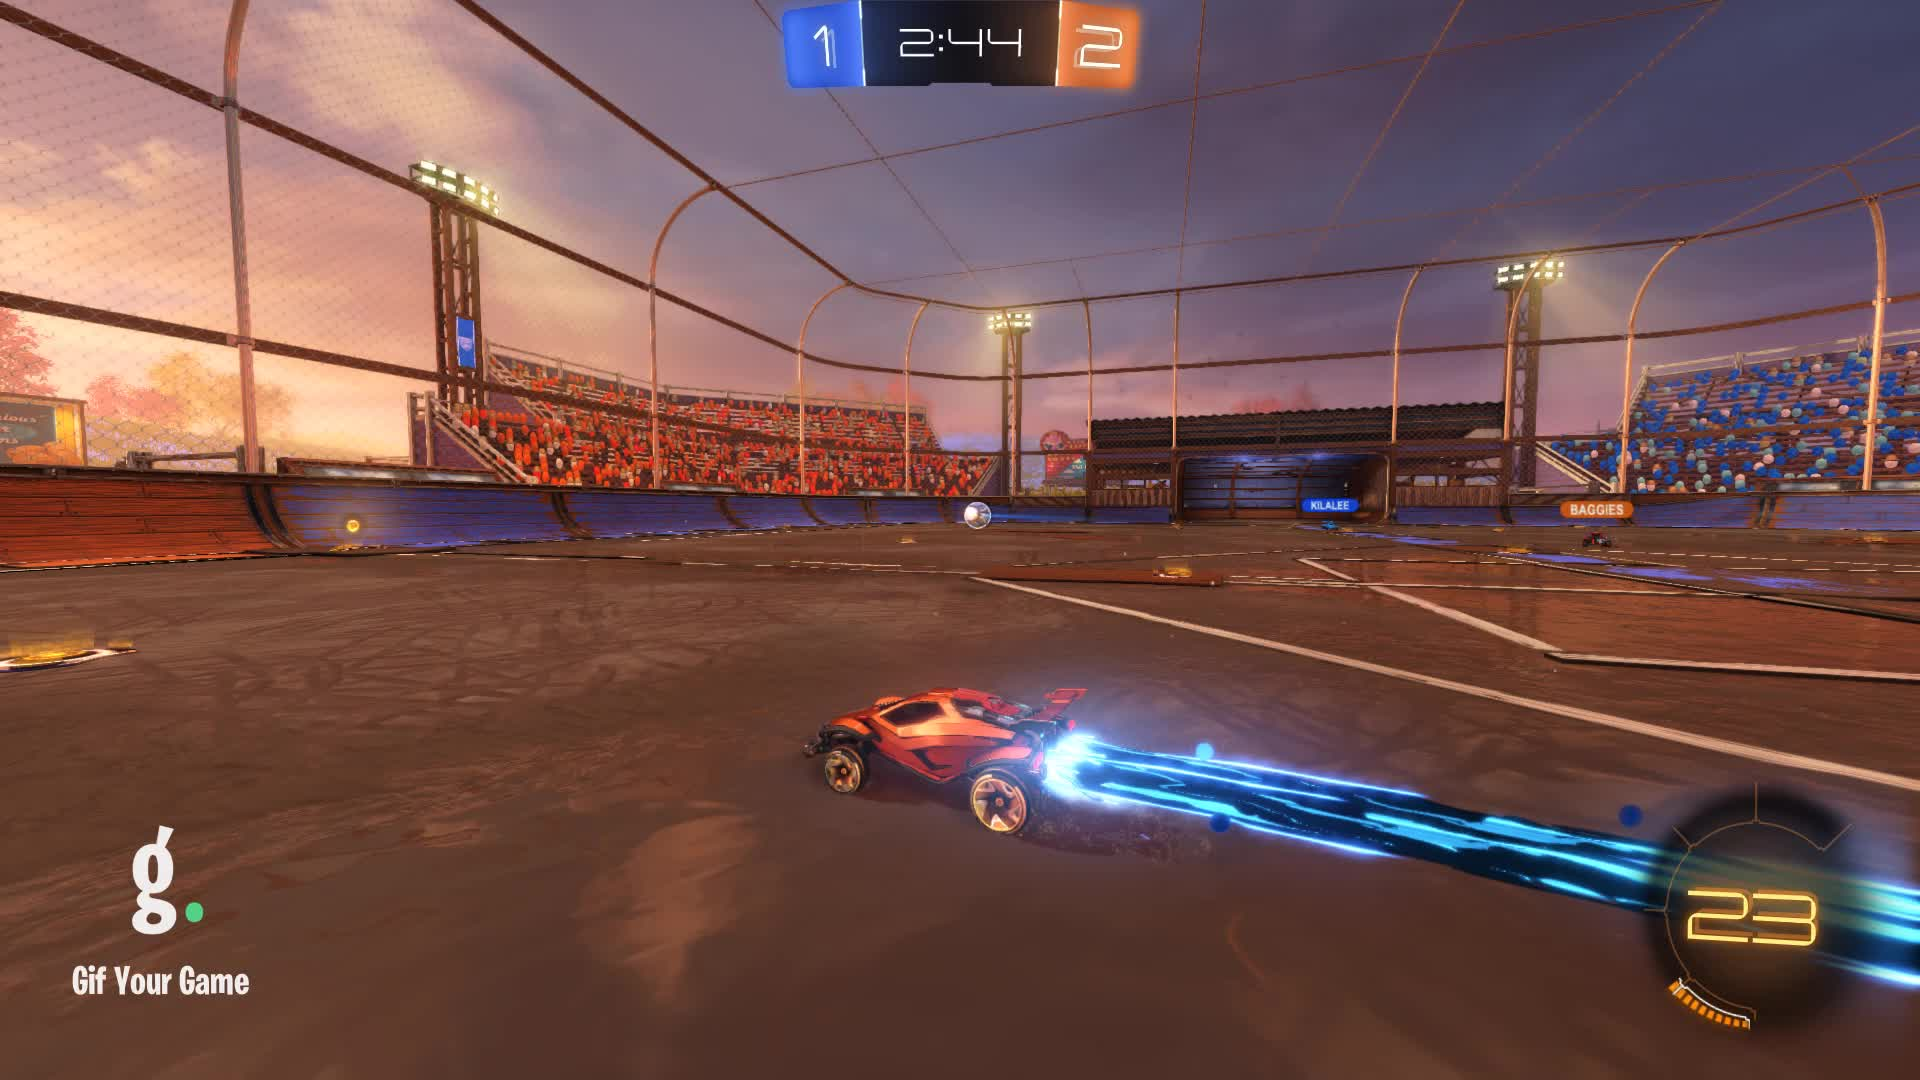 Assist, Gif Your Game, GifYourGame, ItWas...Justified, Rocket League, RocketLeague, Assist 2: ItWas...Justified GIFs